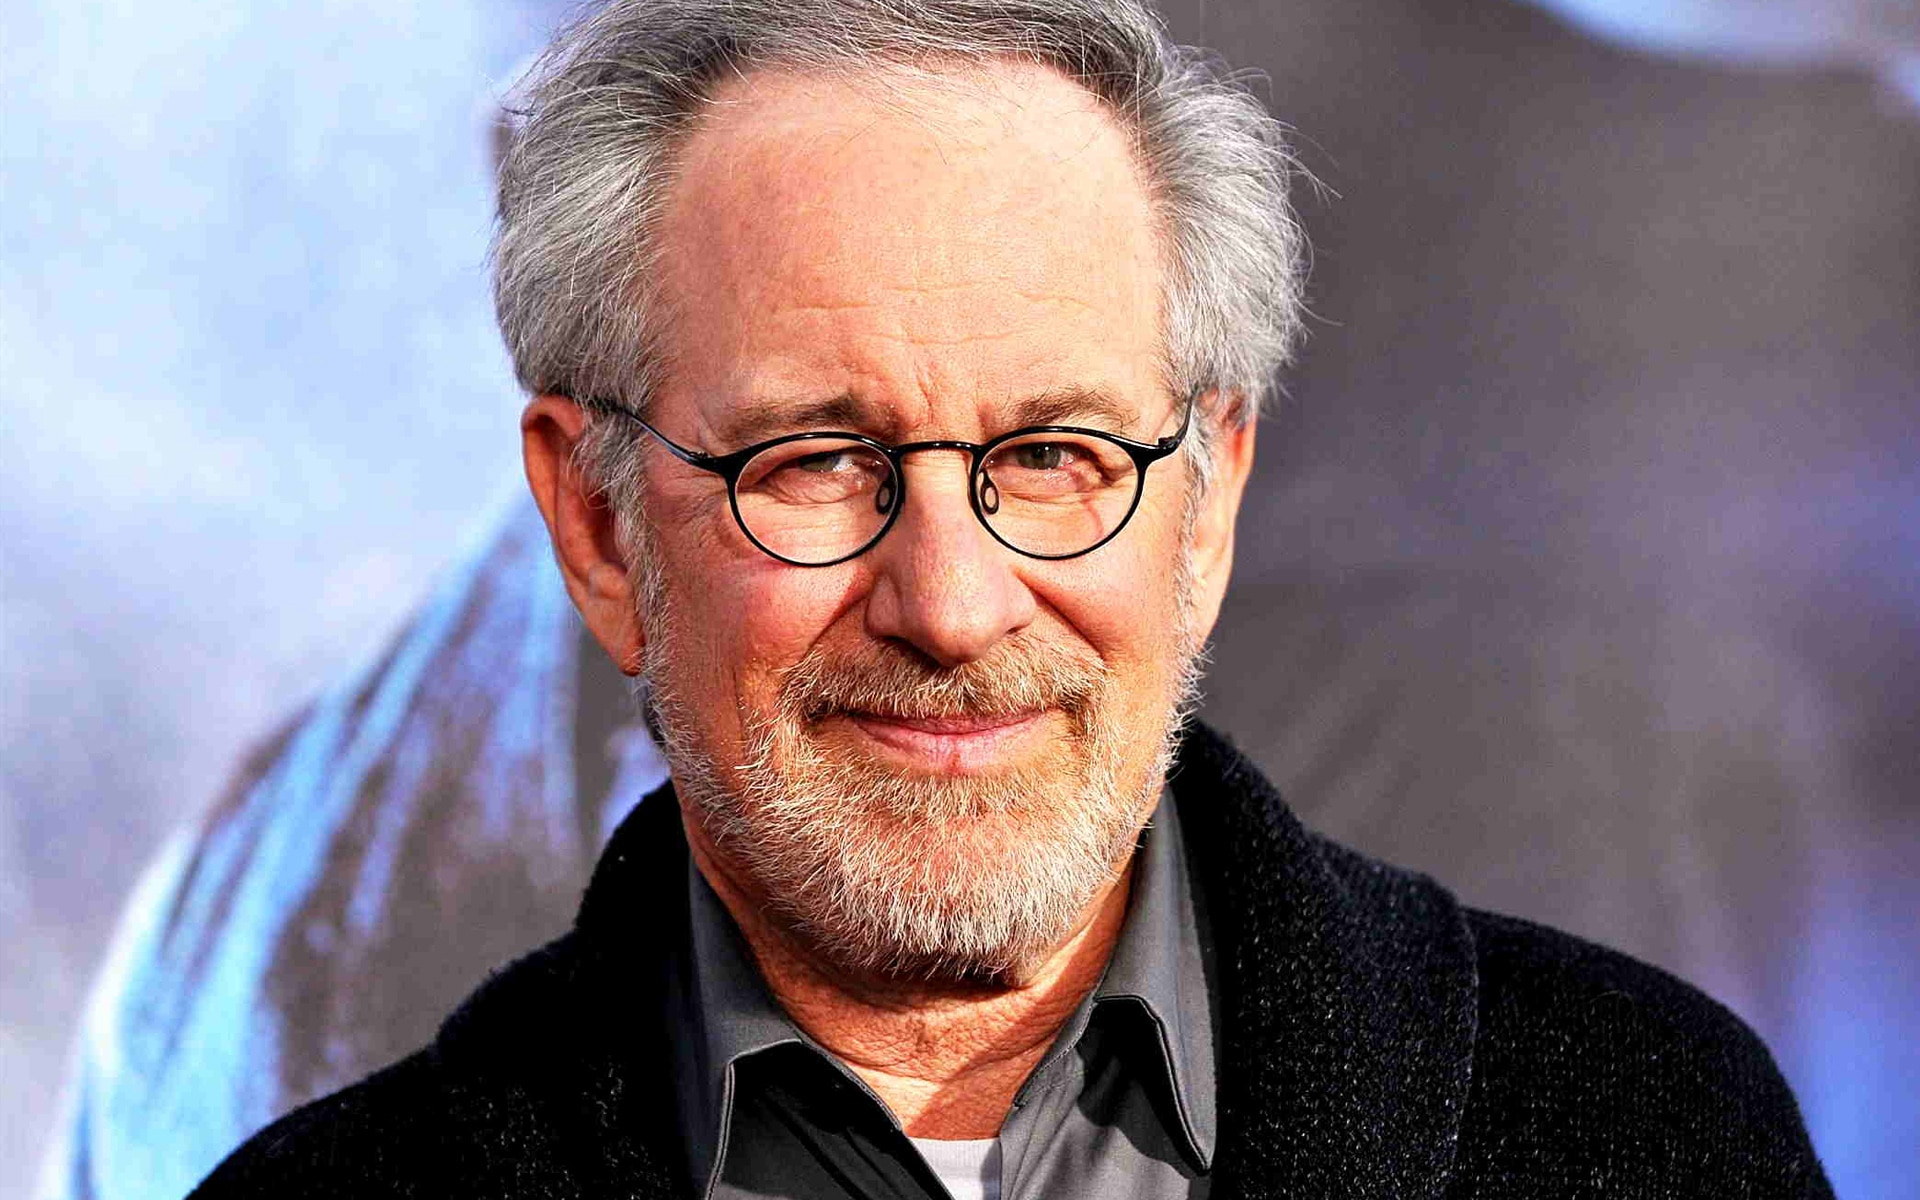 Steven Spielberg Was Super Opposed To The Popular Oscar Category